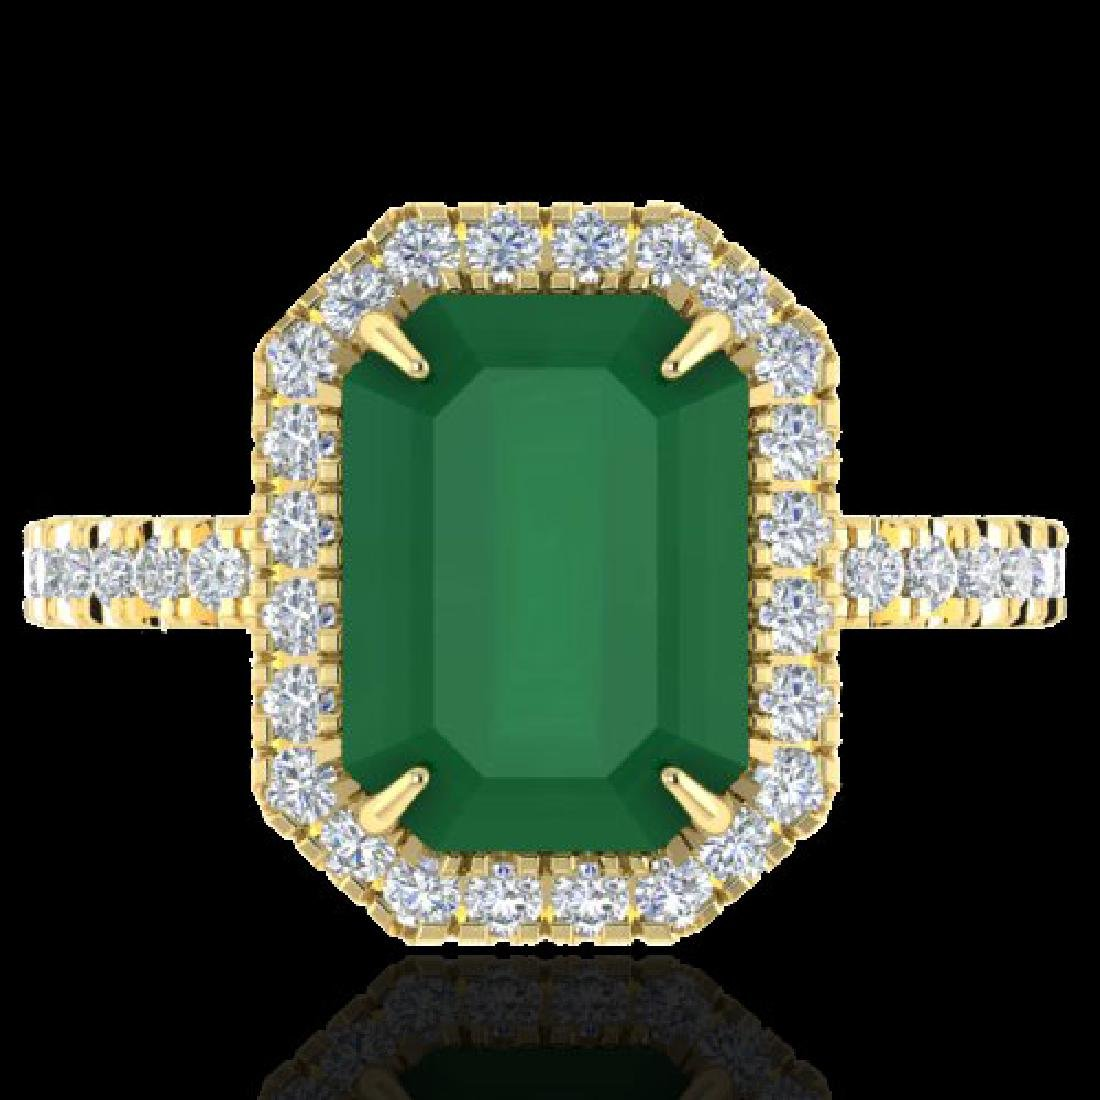 5.33 CTW Emerald And Micro Pave VS/SI Diamond Halo Ring